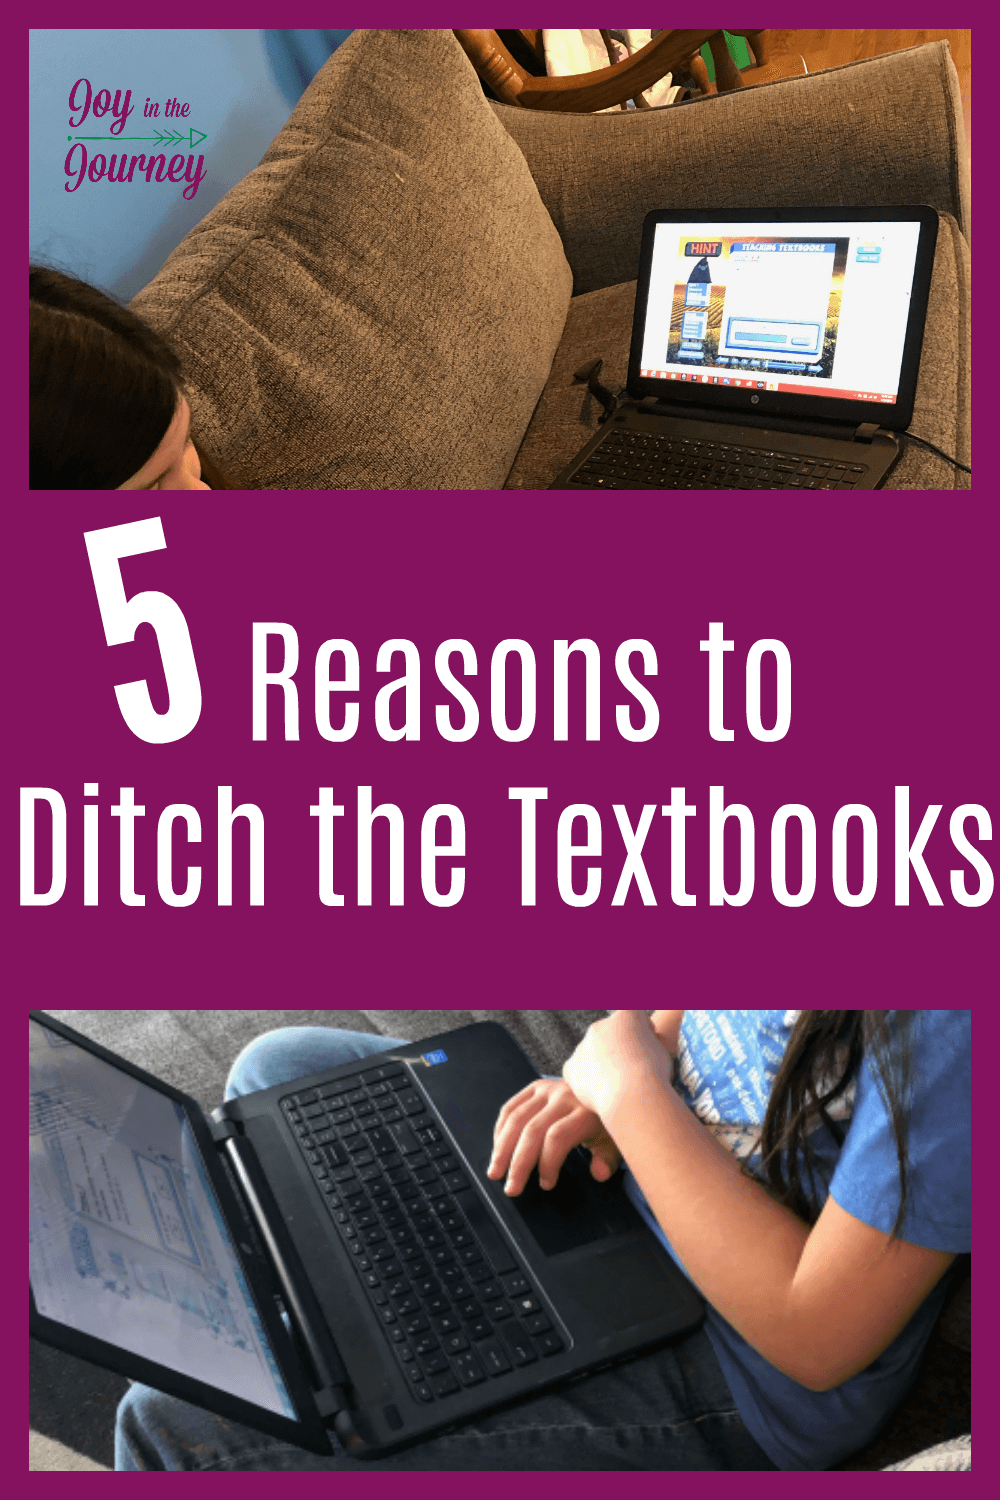 Are you ready to ditch the textbooks? Thanks to programs like Teaching Textbooks, I have realized that ditching the textbooks does not mean our children aren't getting a high-quality education. Here are 5 reasons for you to consider ditching the textbooks too!